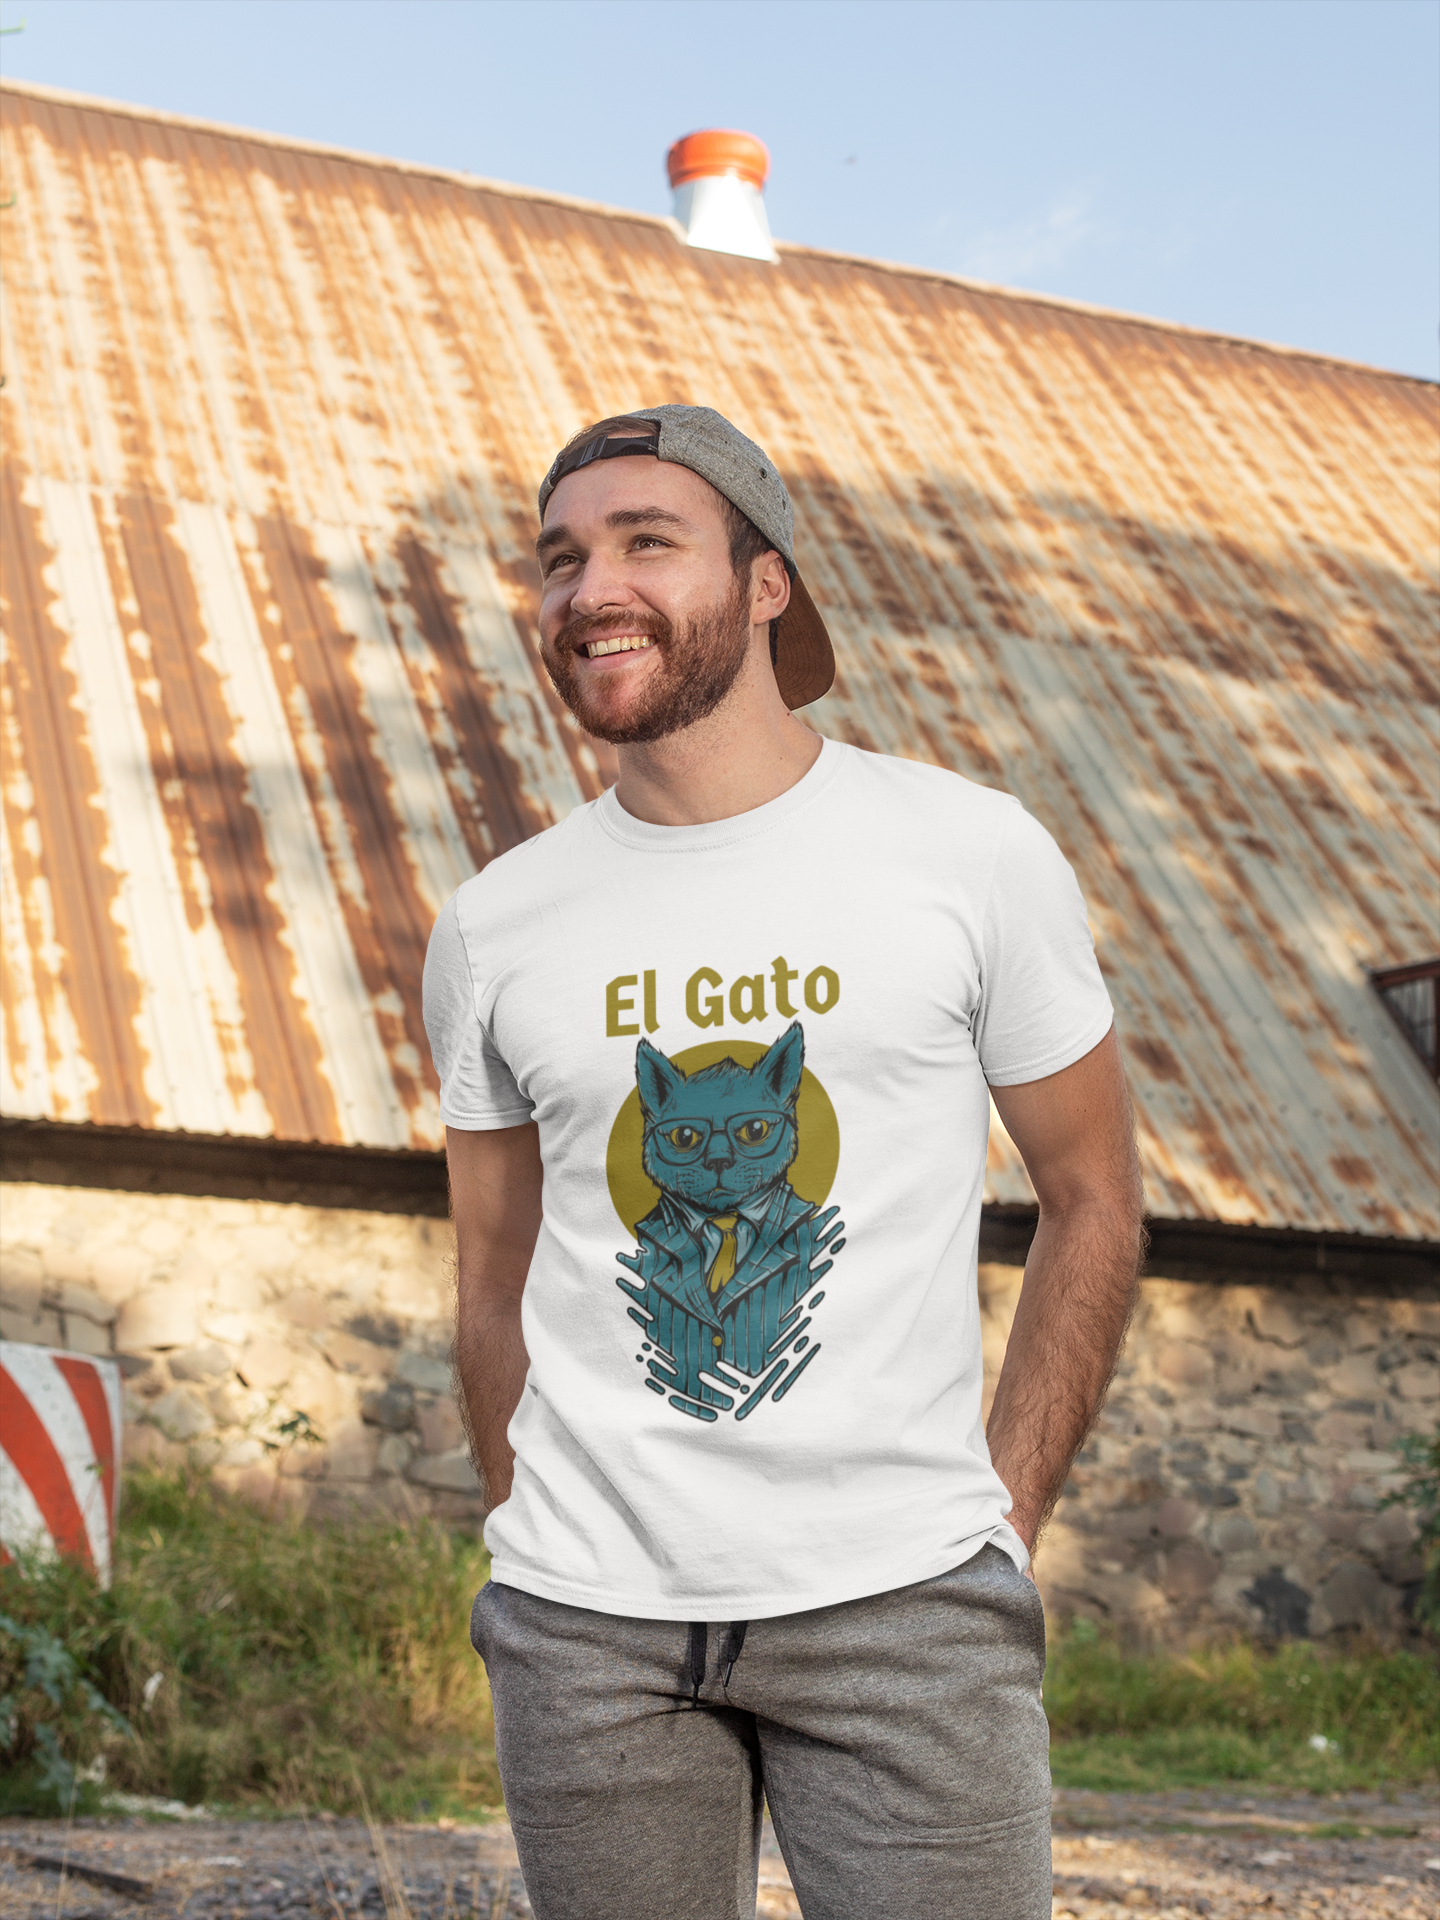 El Gato,Short-Sleeve T-Shirt, The Cat, Nicknames tee | SIVAR ESTILO